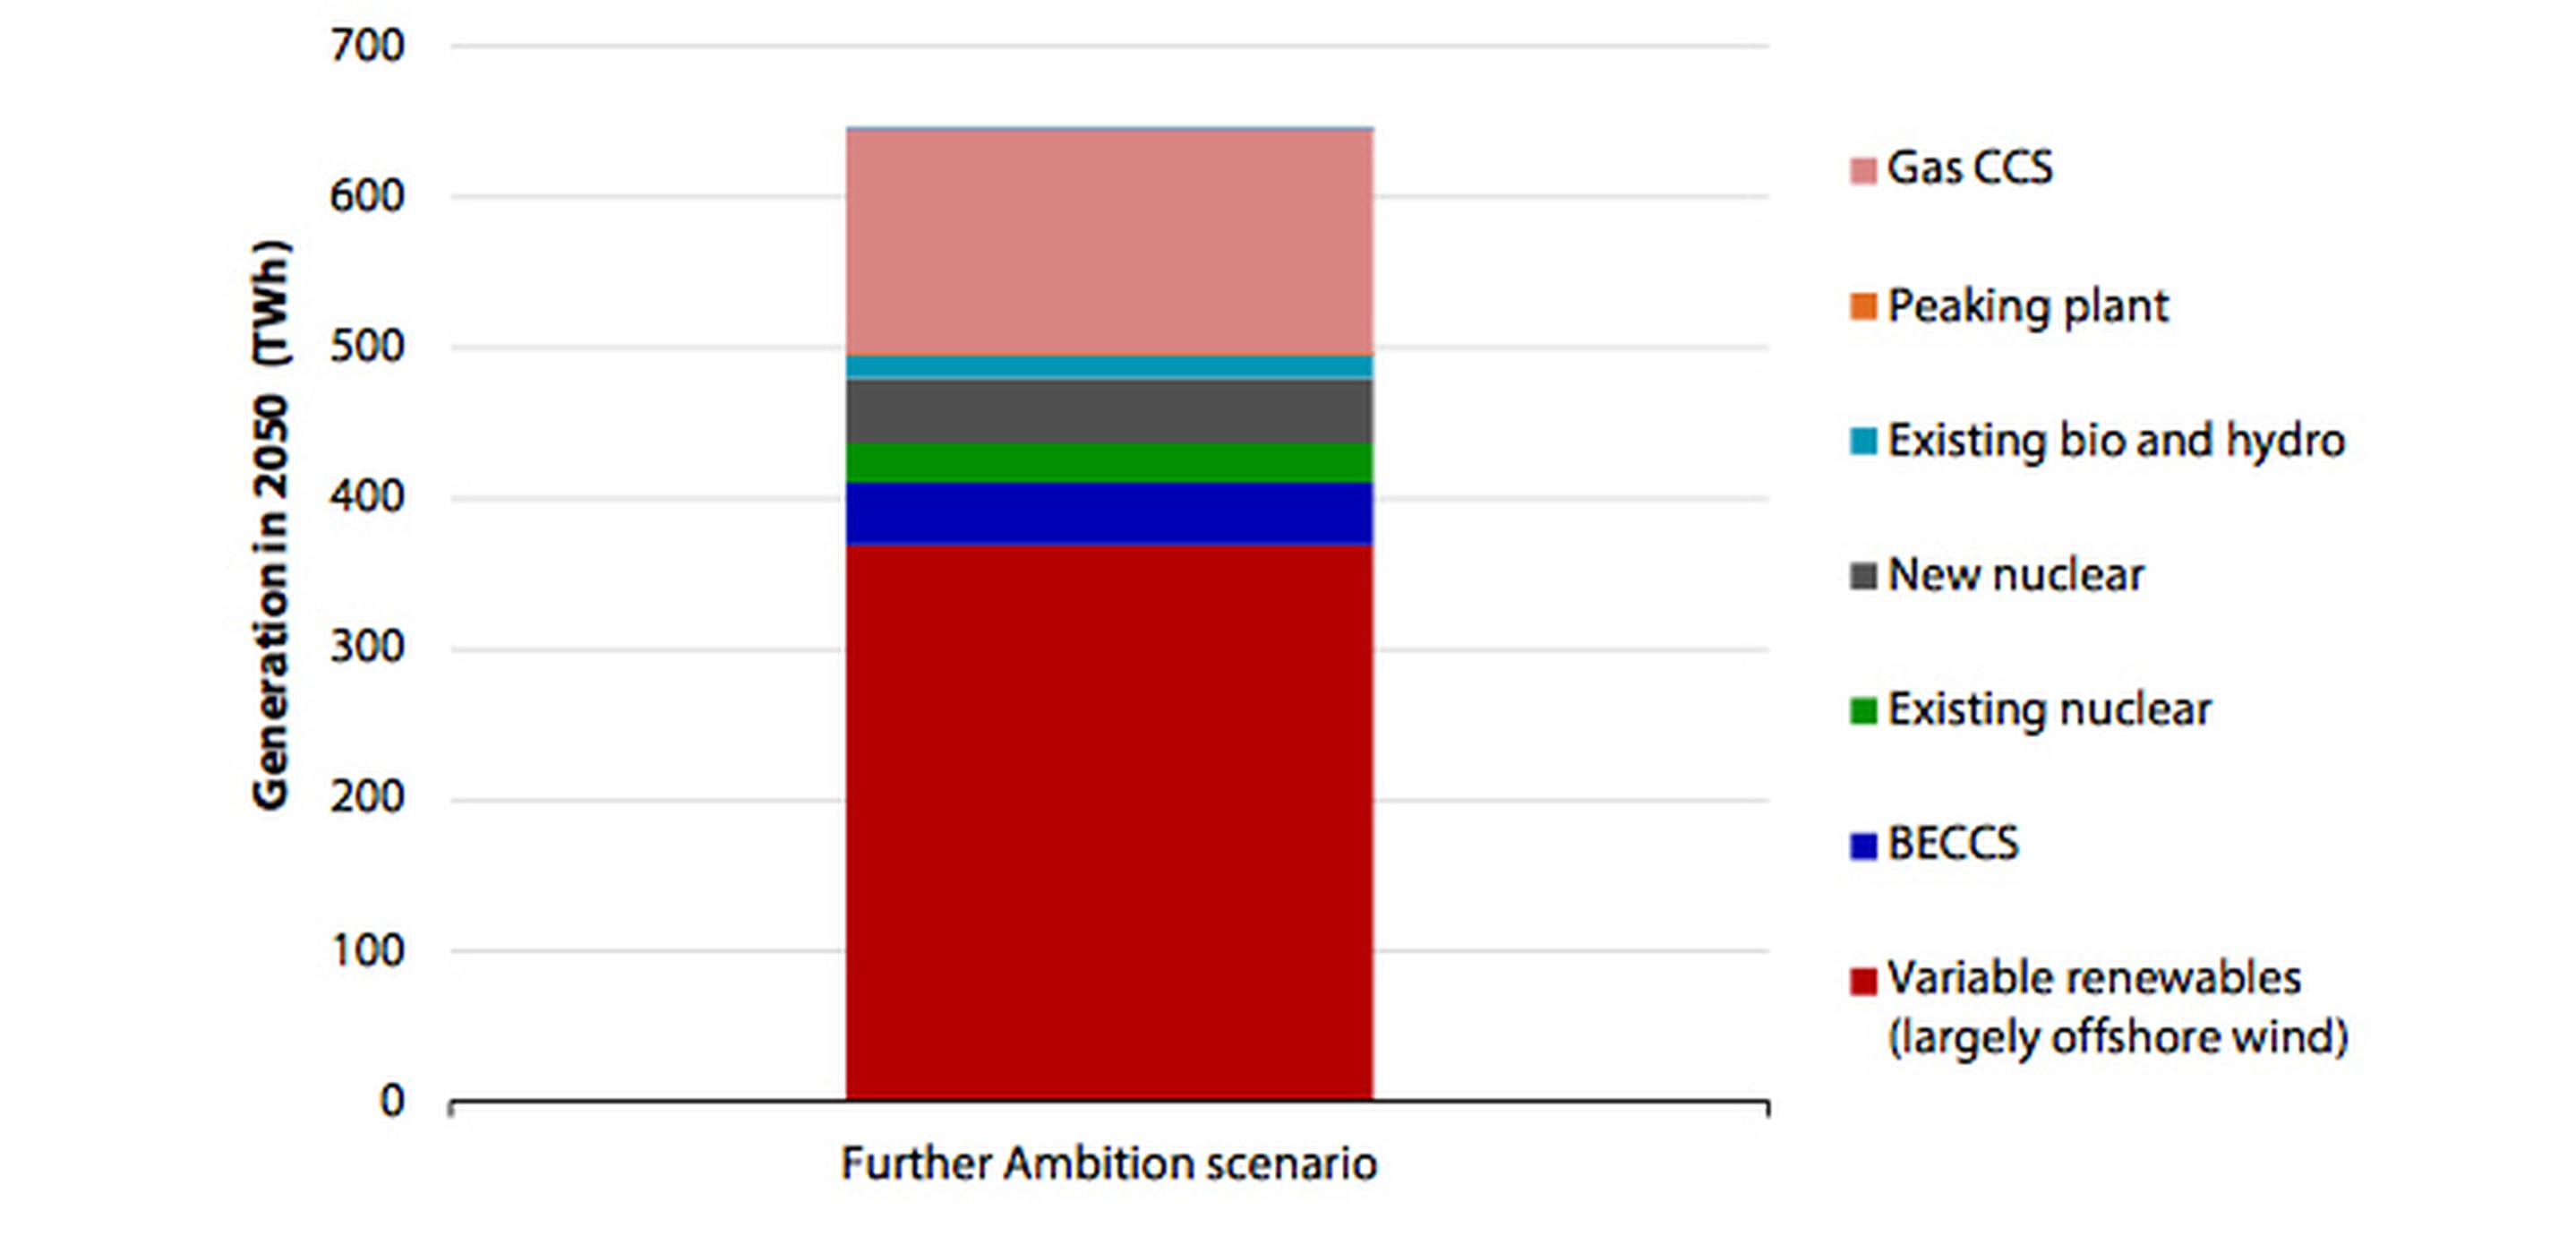 The CCC's illustrative generation mix for its Further Ambition scenario low carbon power system, 2050